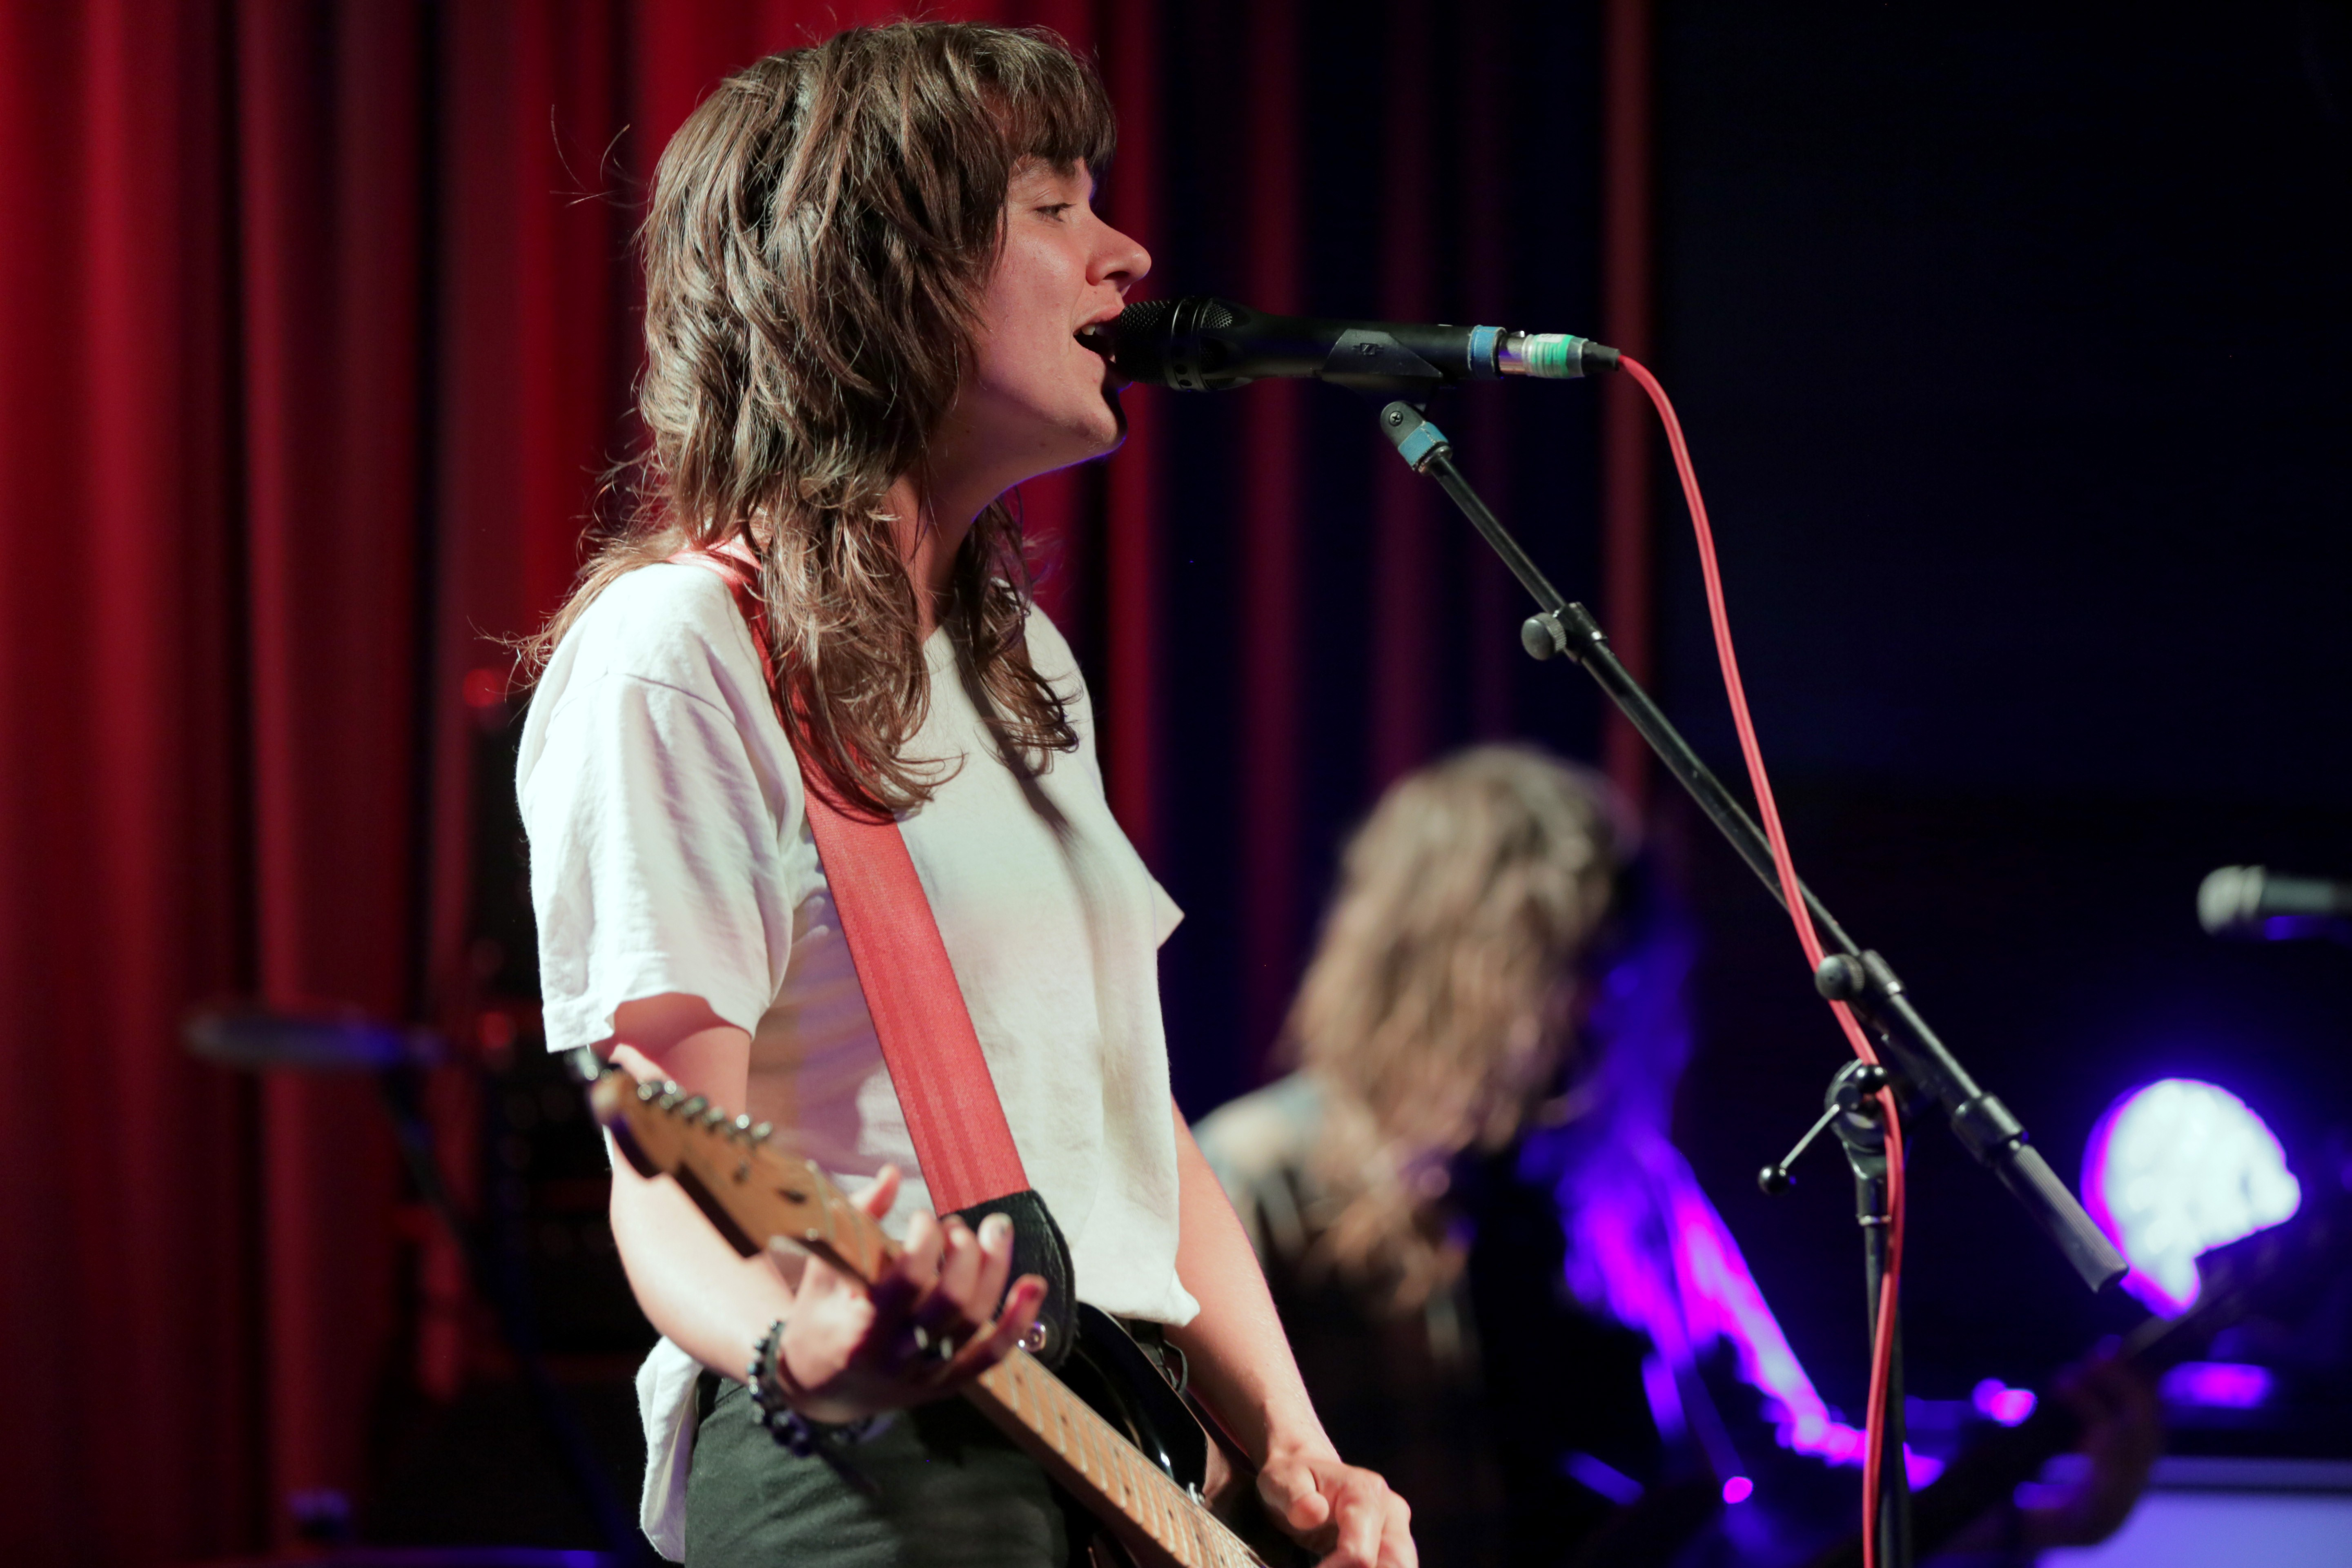 courtney-barnett-performs-three-songs-on-cbs-this-morning-watch